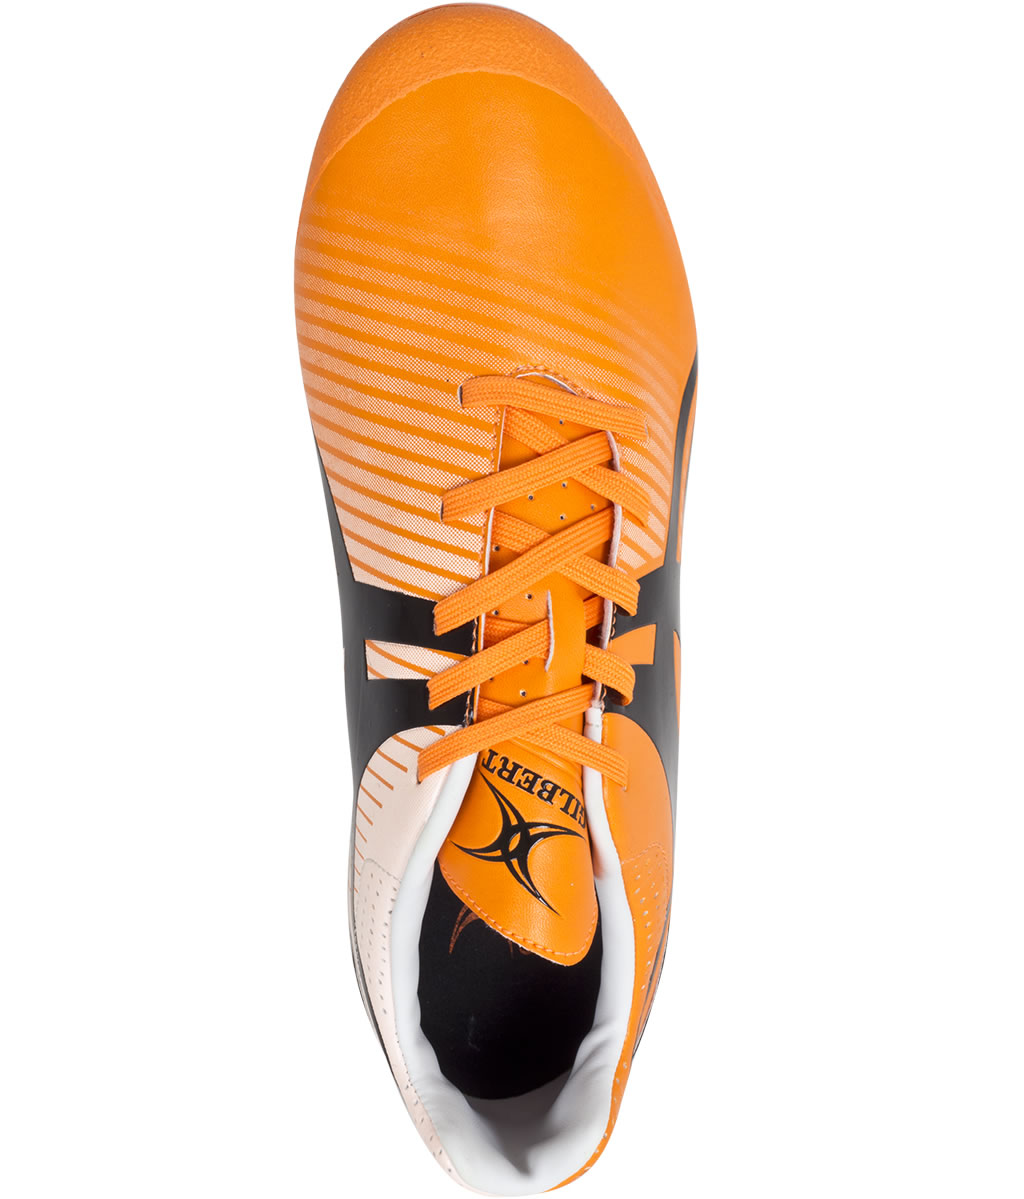 Ignite Fly Rugby Boots by Gilbert